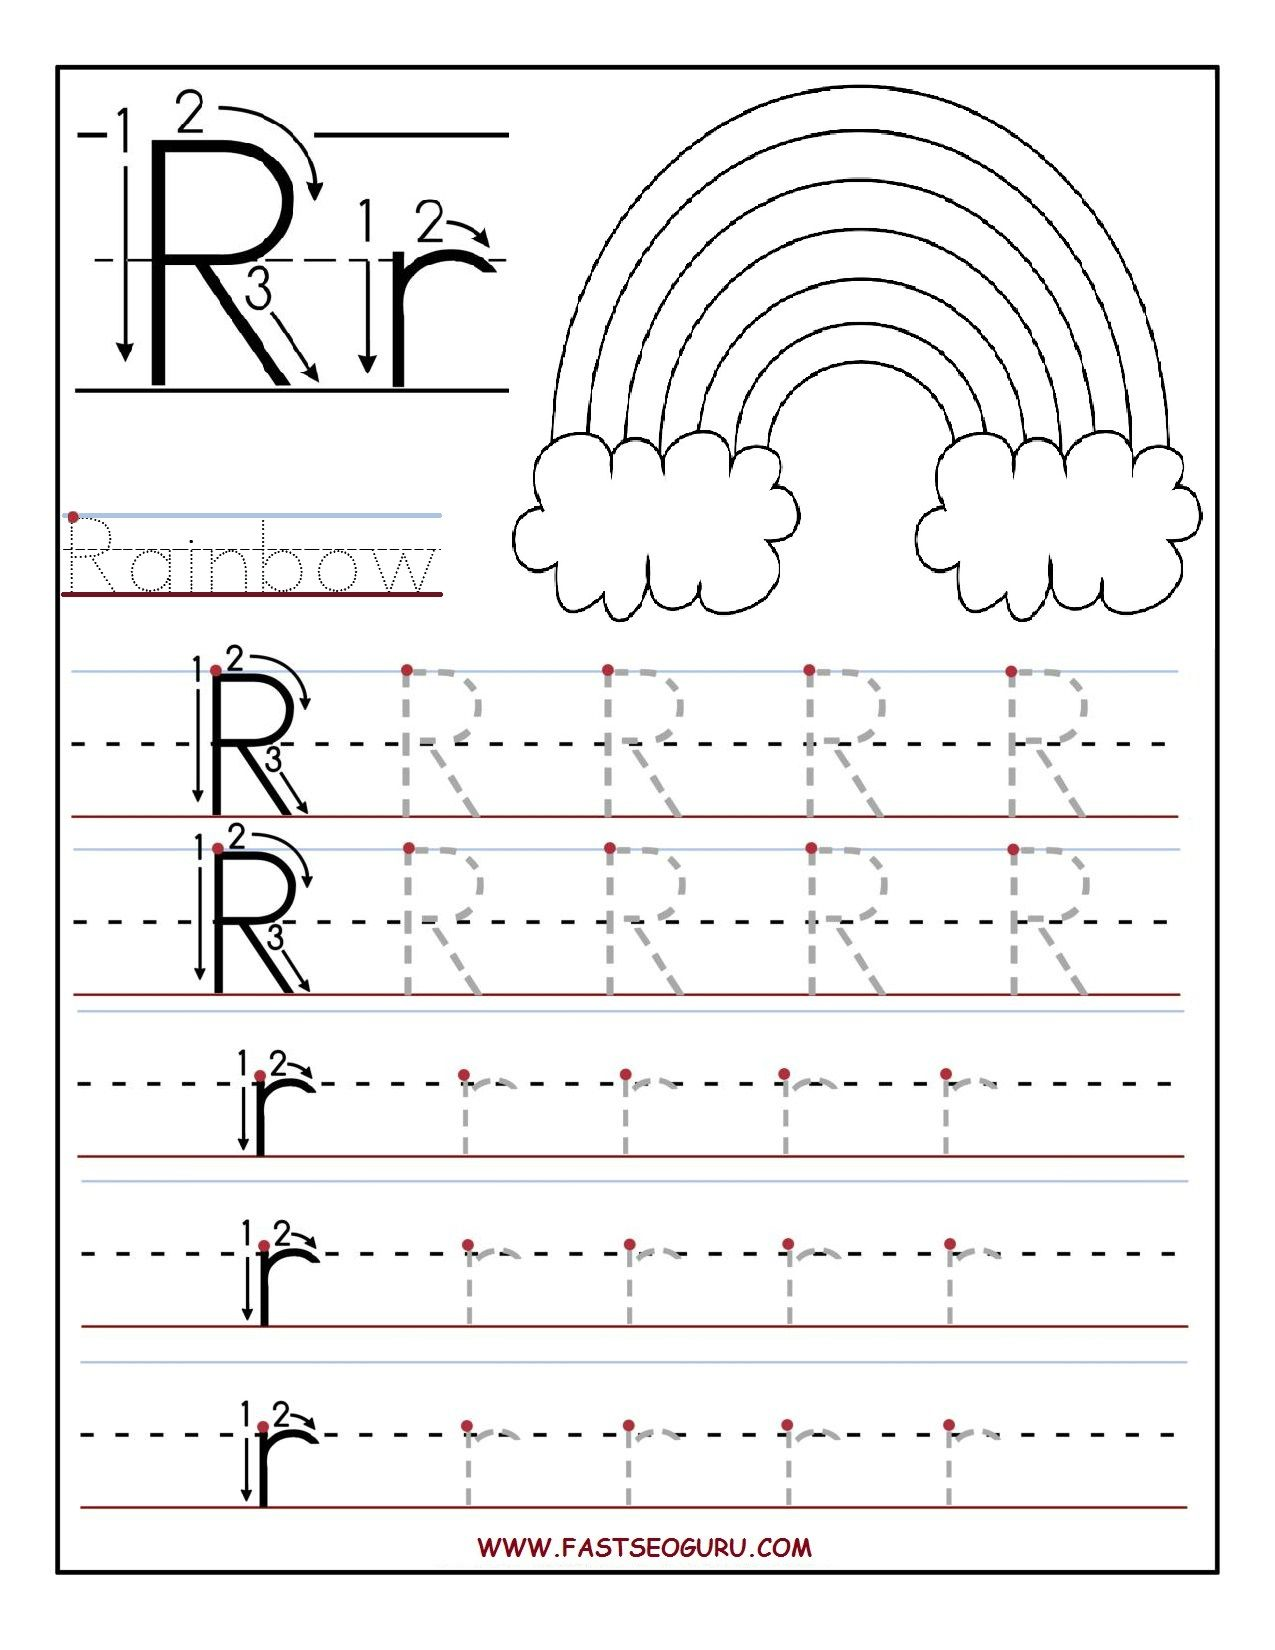 Printable Letter R Tracing Worksheets For Preschool With Images